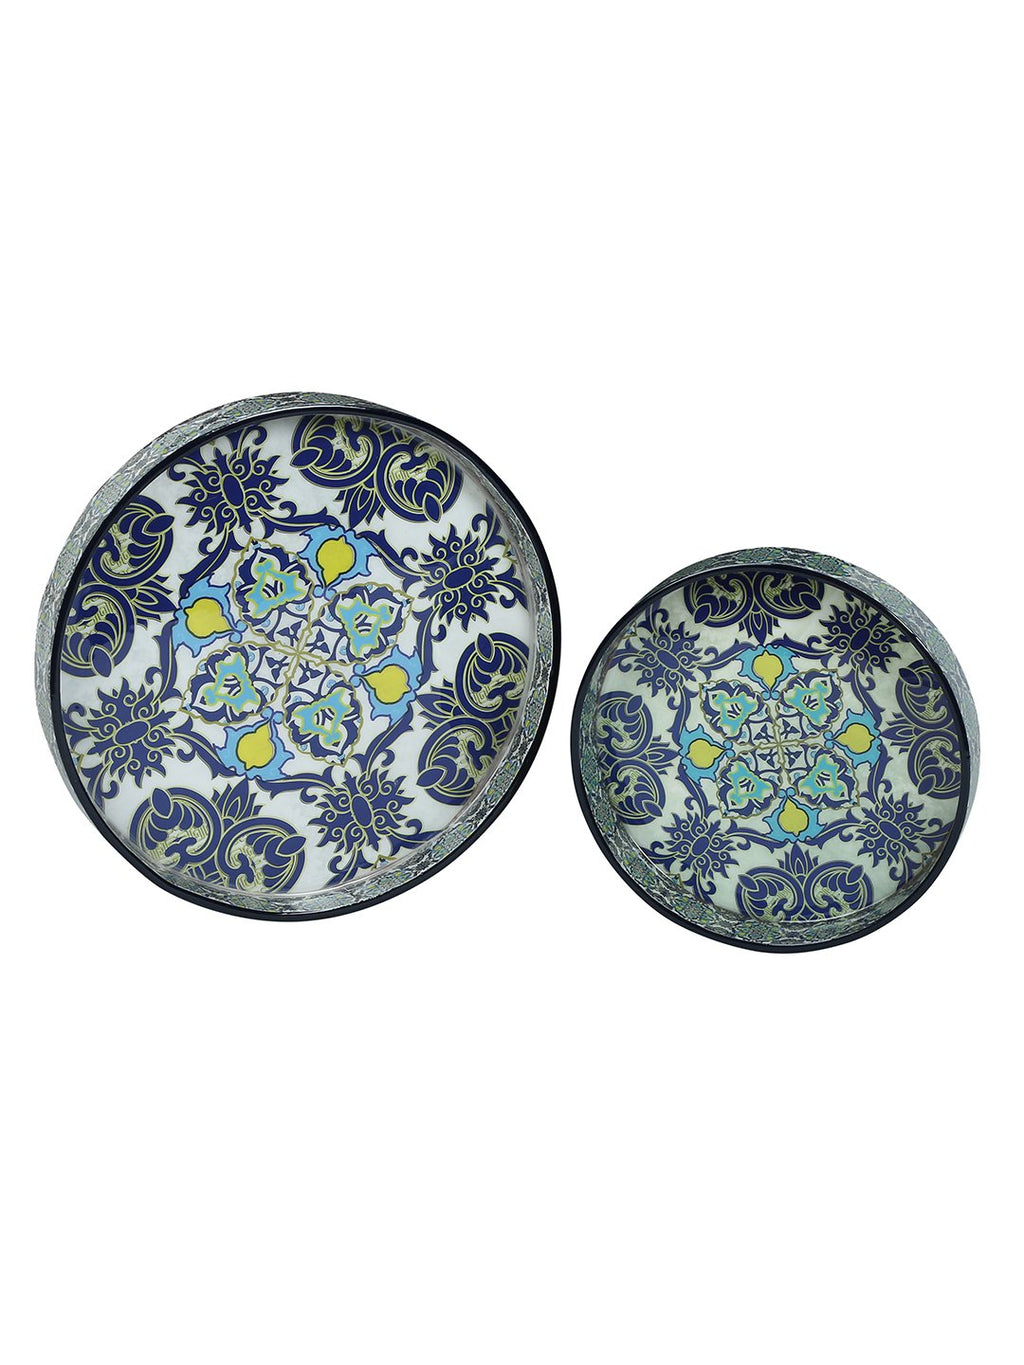 Handcrafted Persian Delight Trays (Set of 2)